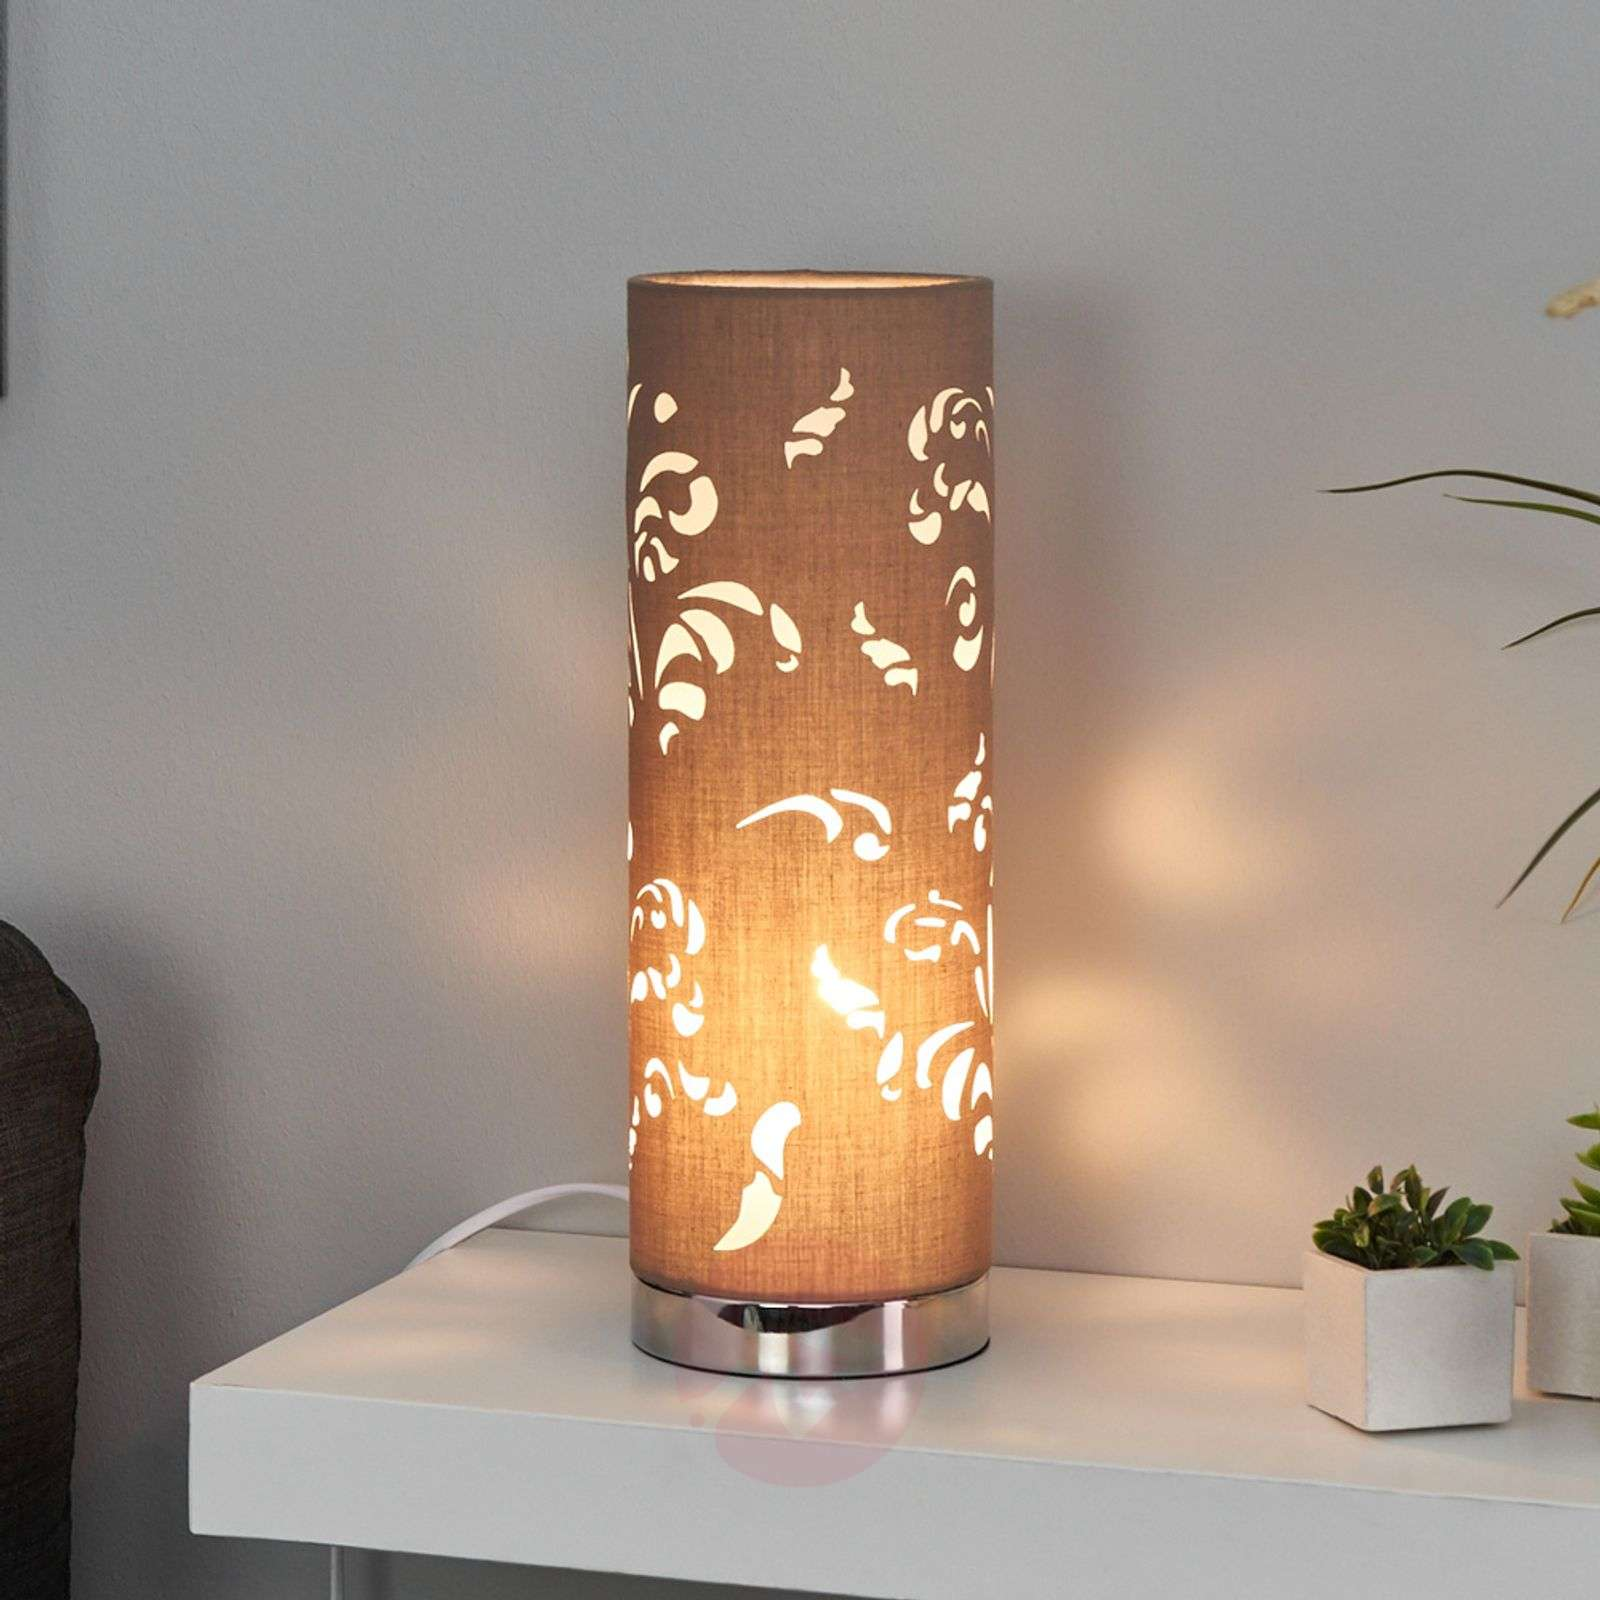 Flora enchanting table lamp cappuccino with décor-4581232-01